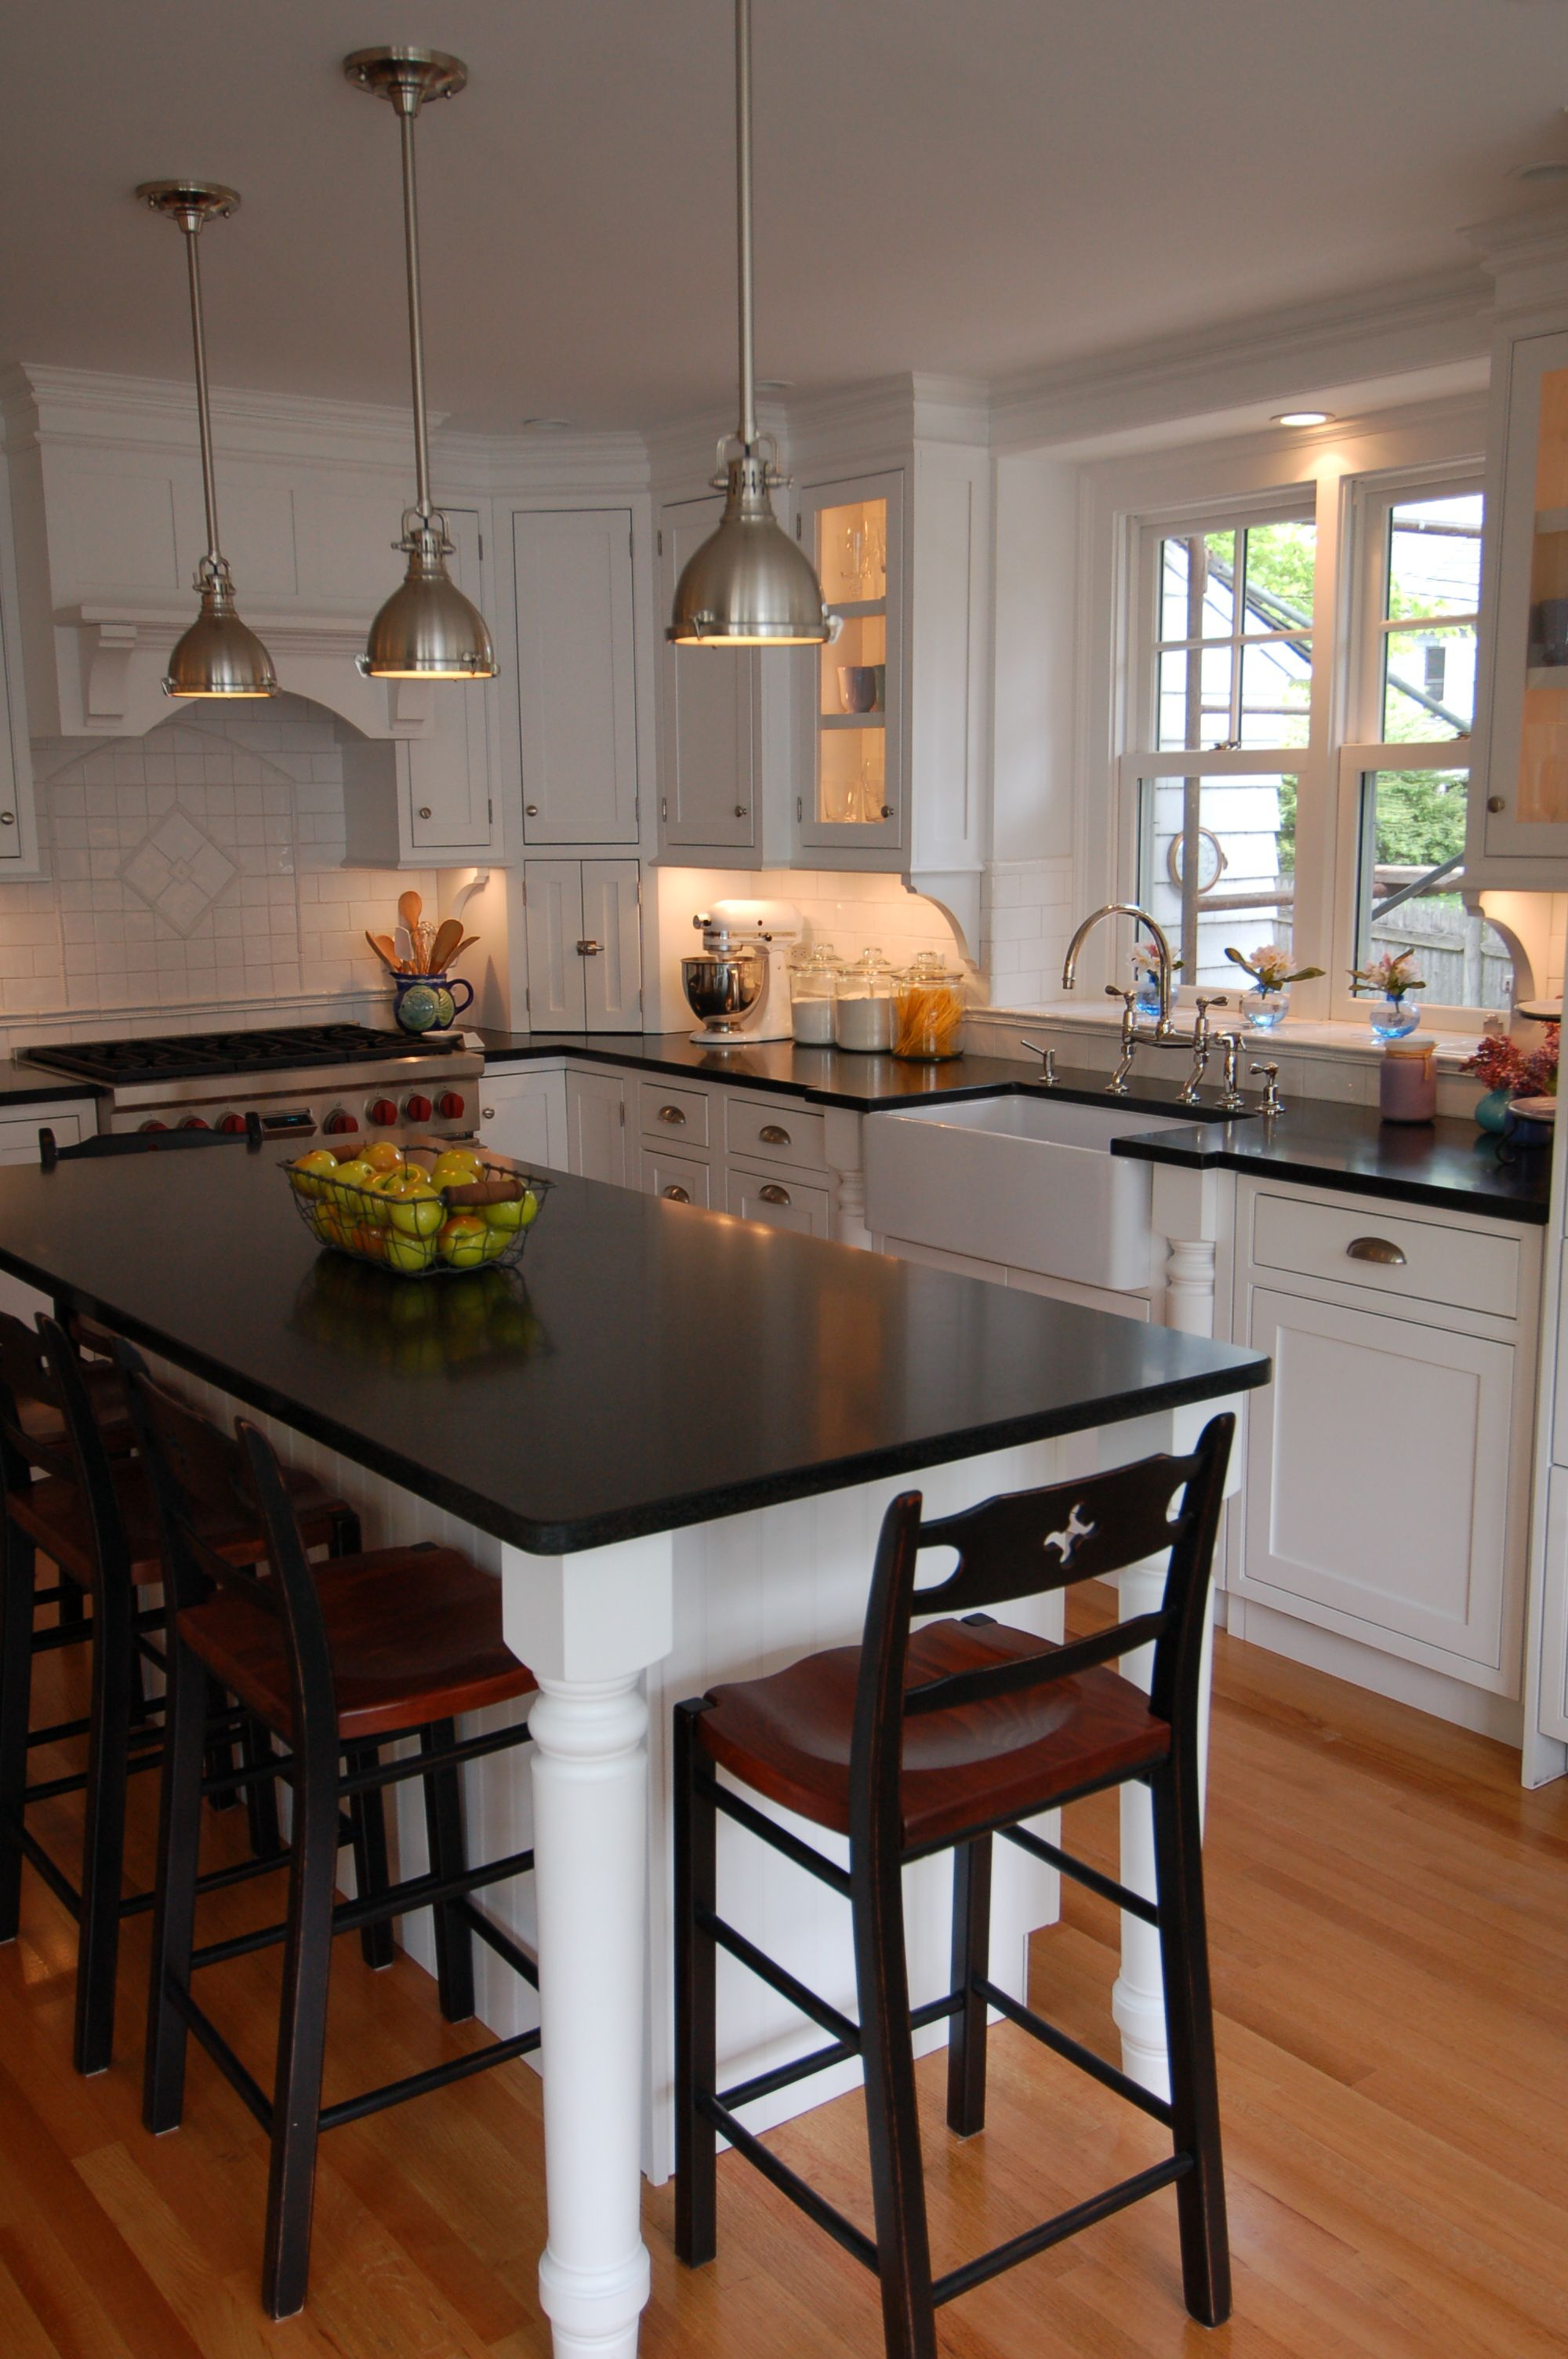 sink and stove location with island and lamps perfect kitchen ideas pinterest stove on kitchen island ideas in small kitchen id=17246